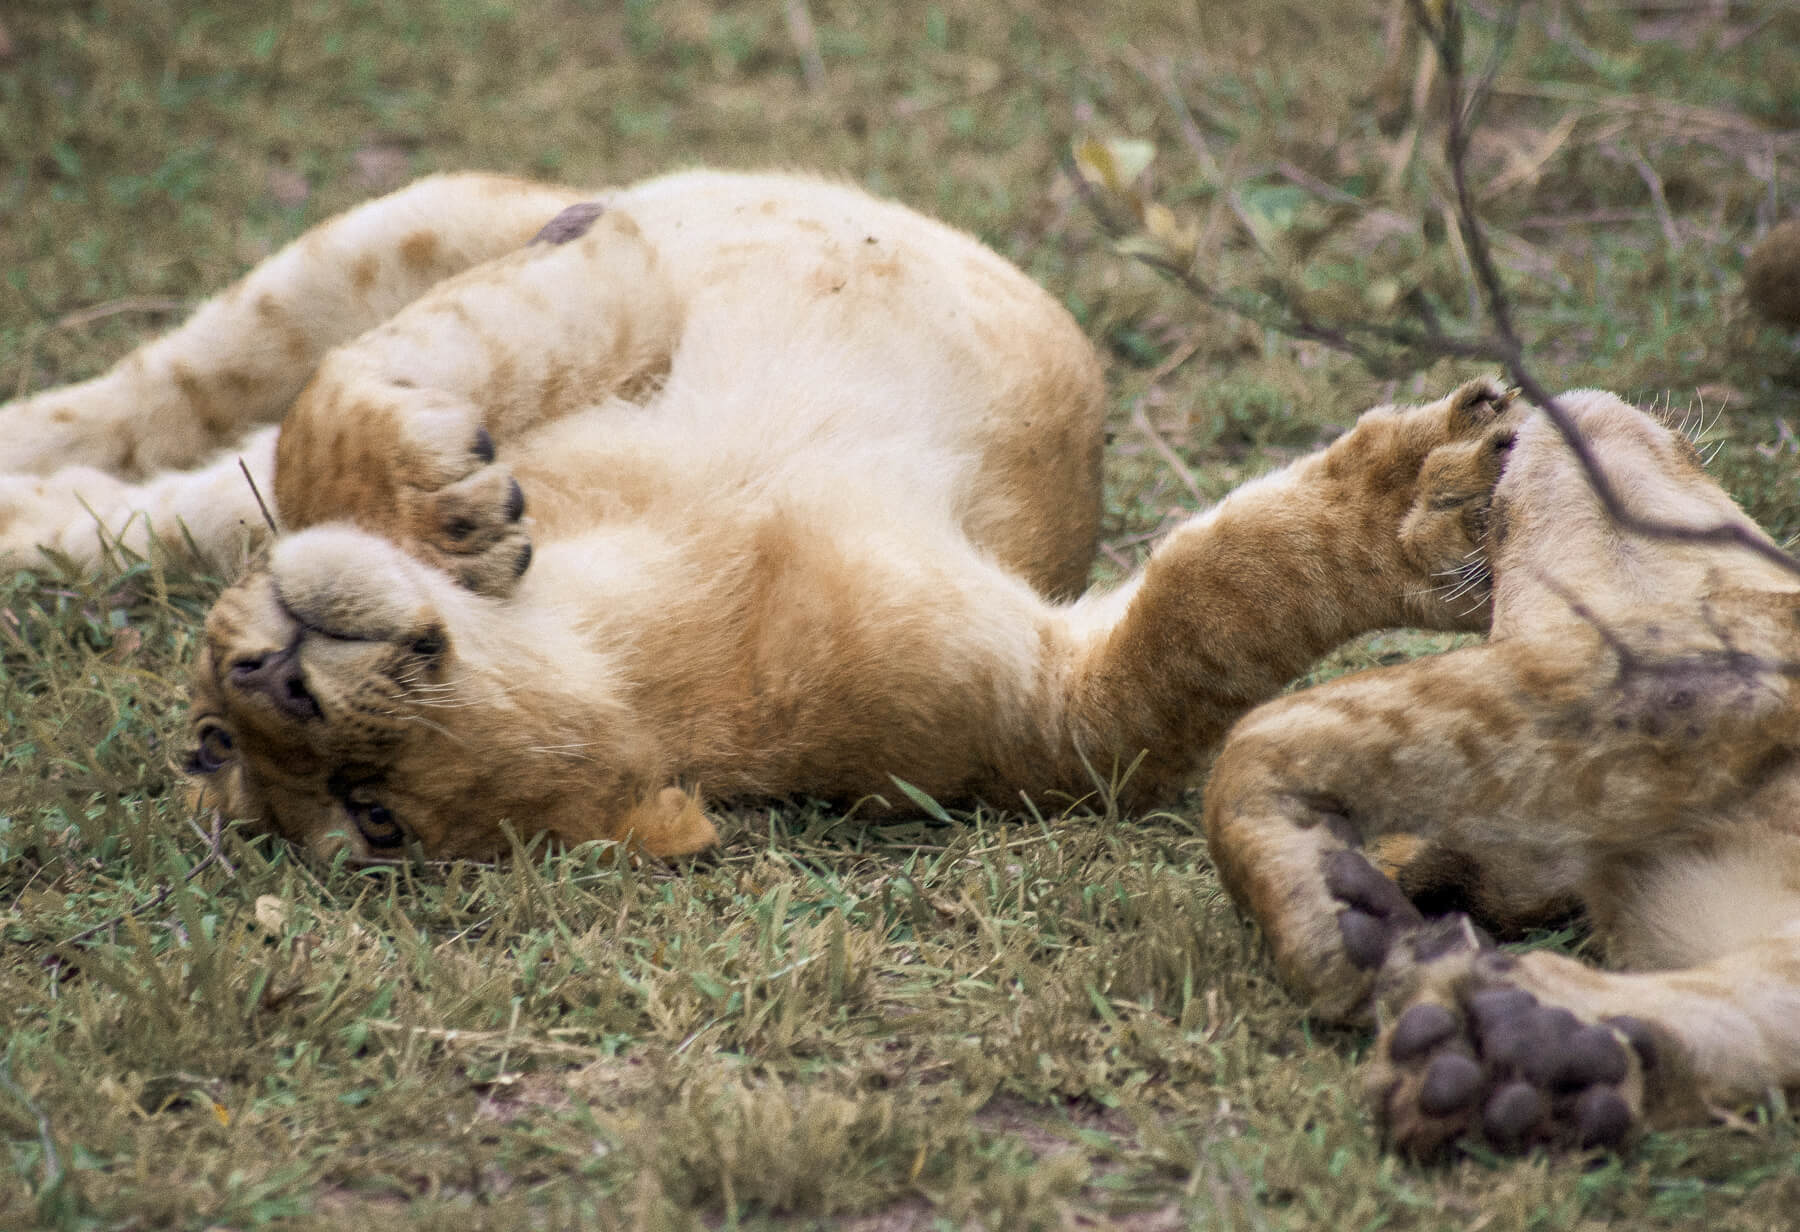 2 young lions laying on their backs playing with each other in the grass